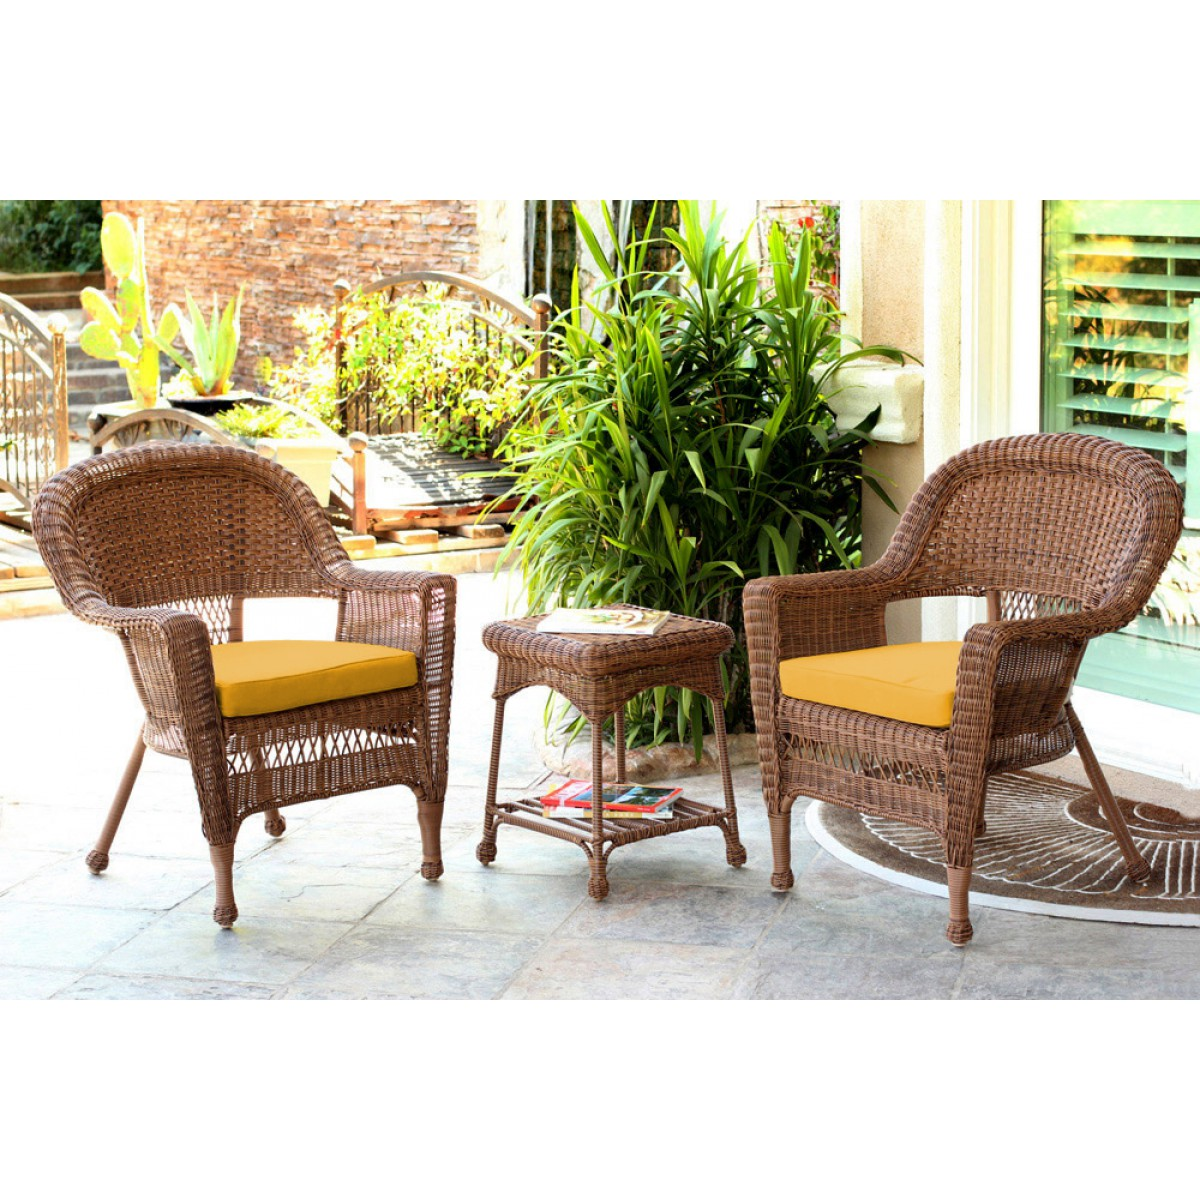 Honey Wicker Chair And End Table Set With Mustard Chair Cushion